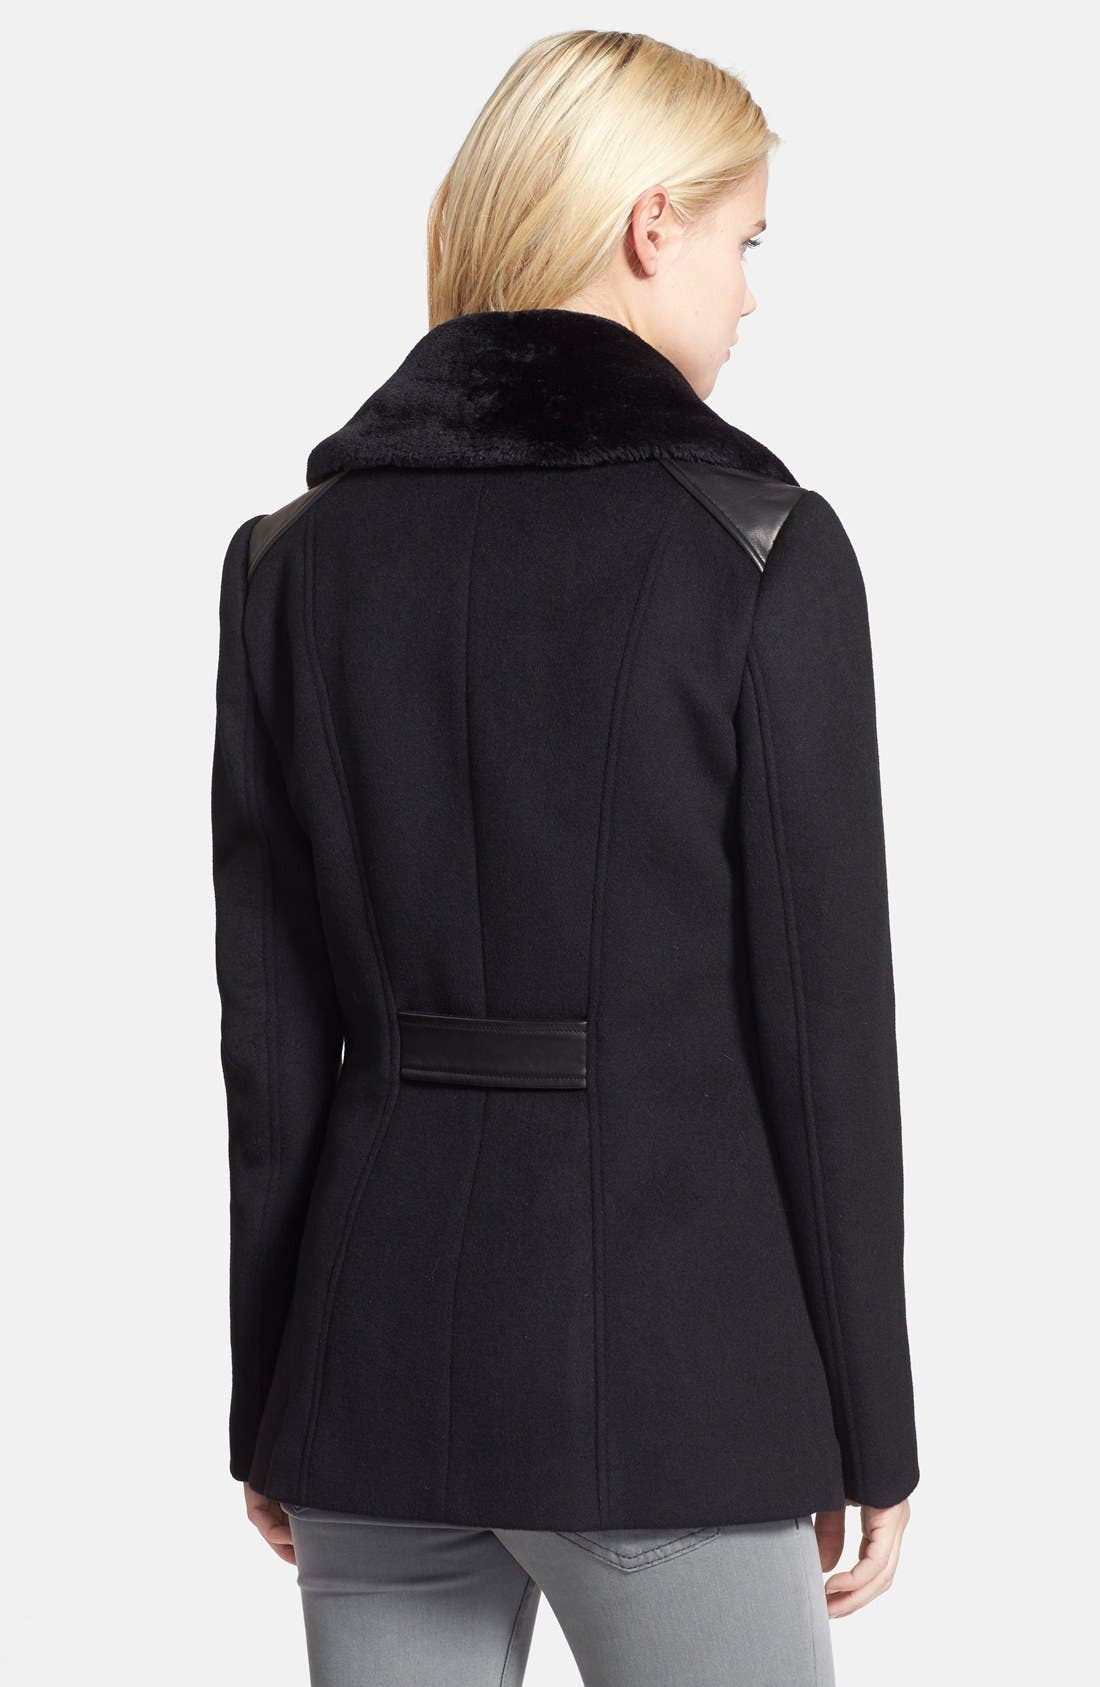 Alternate Image 2  - Soia & Kyo Double Breasted Wool Blend Peacoat with Faux Fur Collar (Online Only)